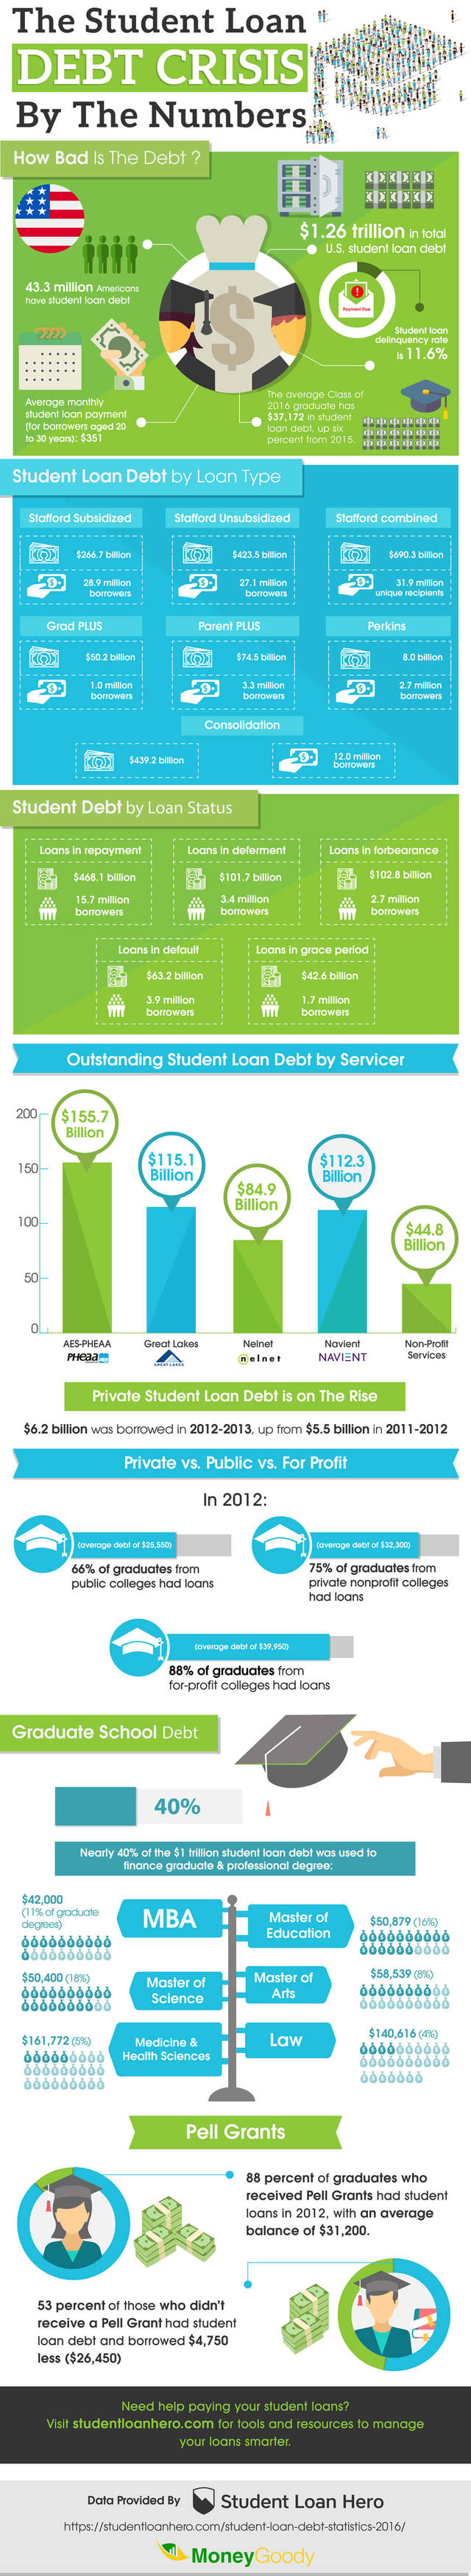 Student loan debt statstics infographic